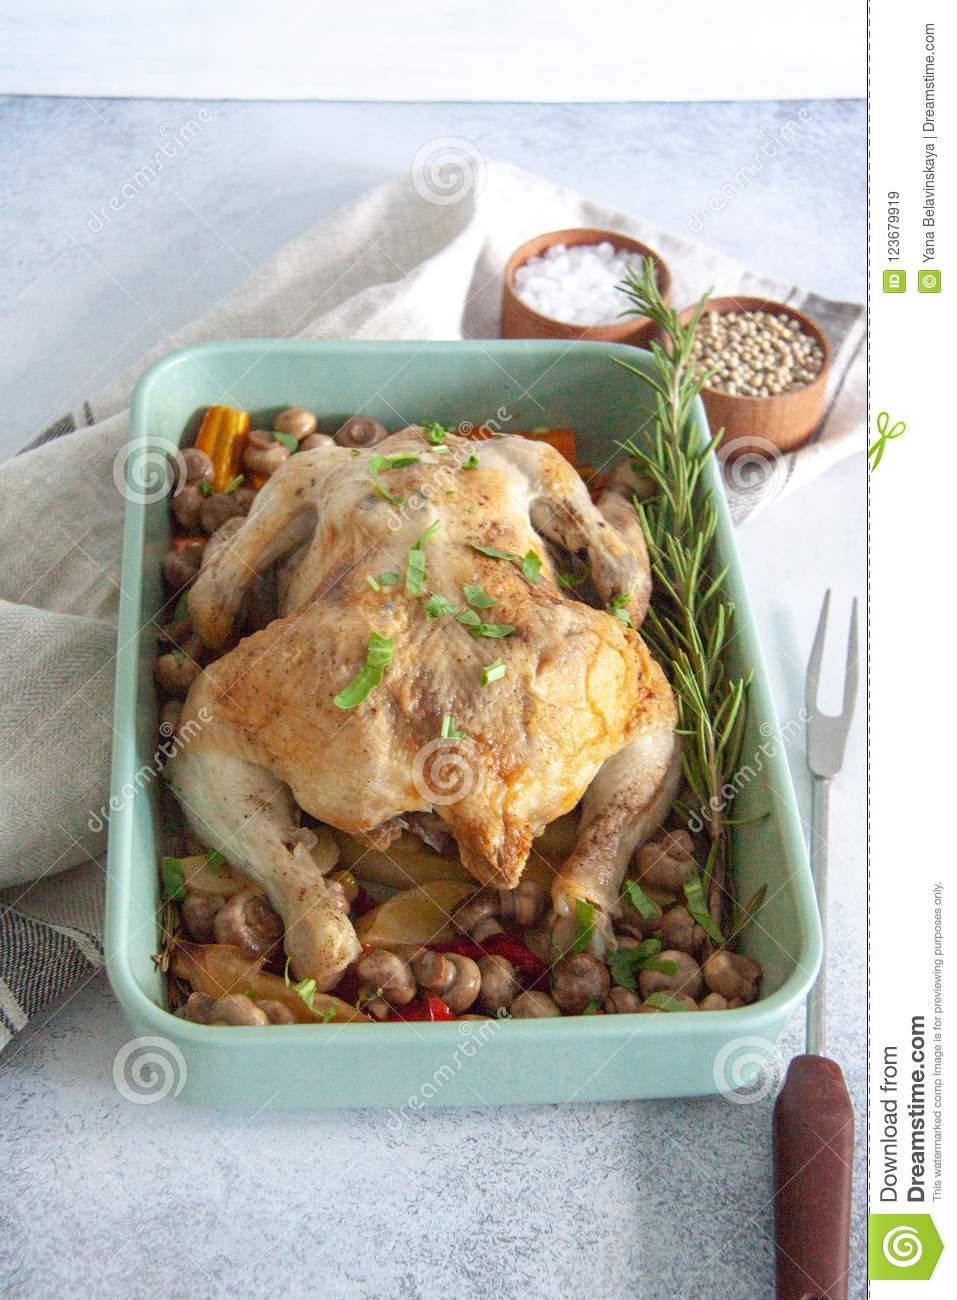 Oven bakes chicken with veggies and mushrooms